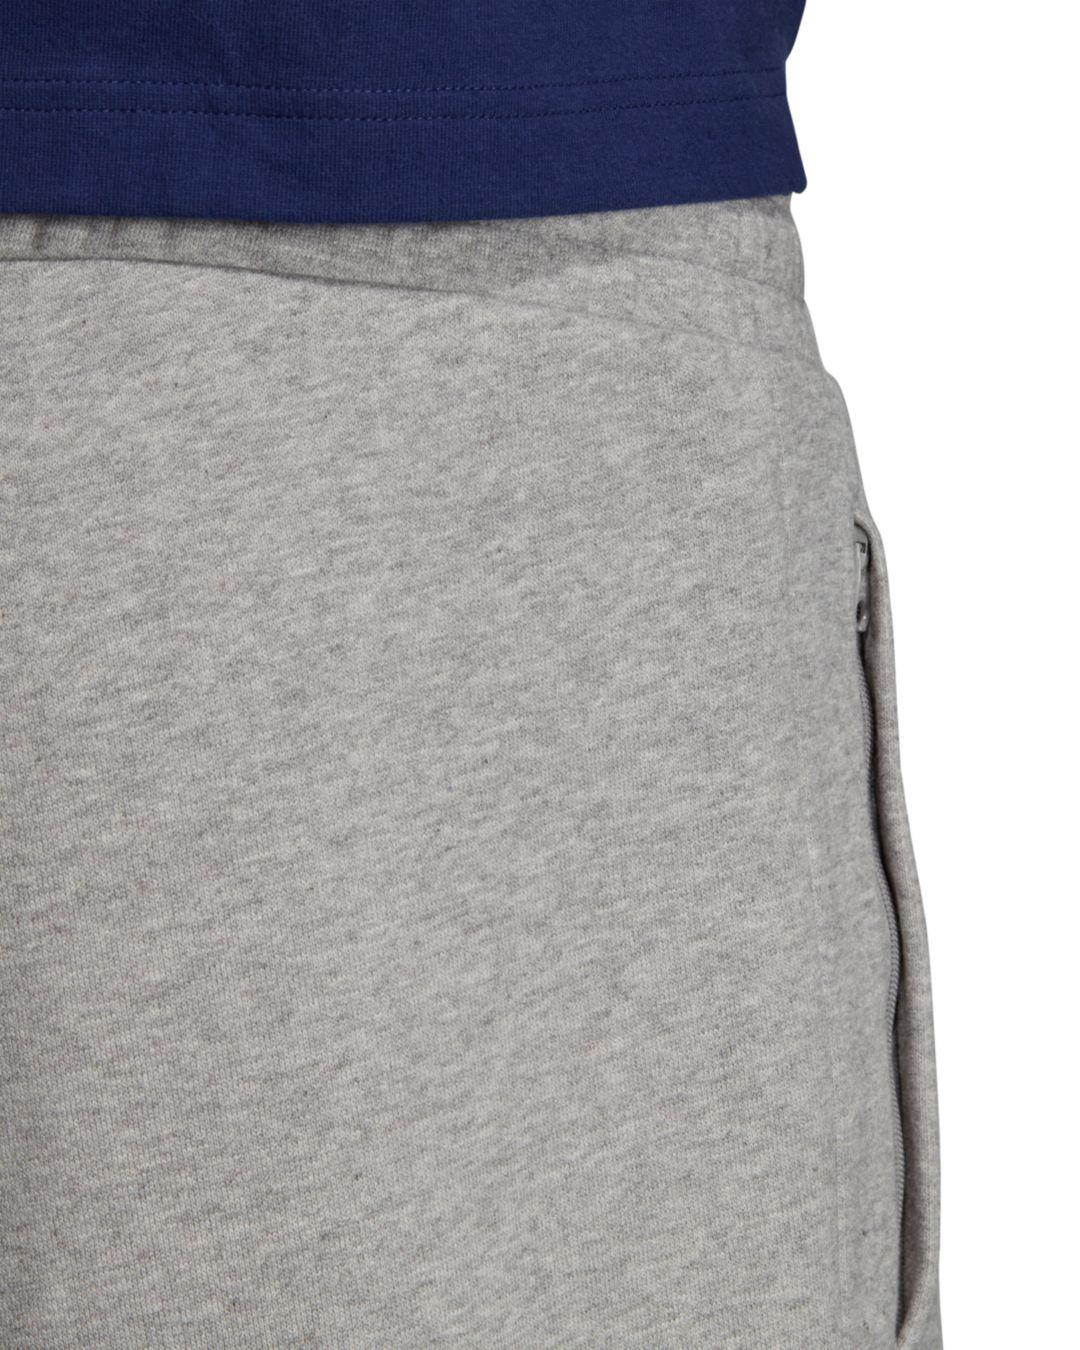 375db2164 Adidas Originals - Gray Archive French Terry Sweatpants for Men - Lyst.  View fullscreen